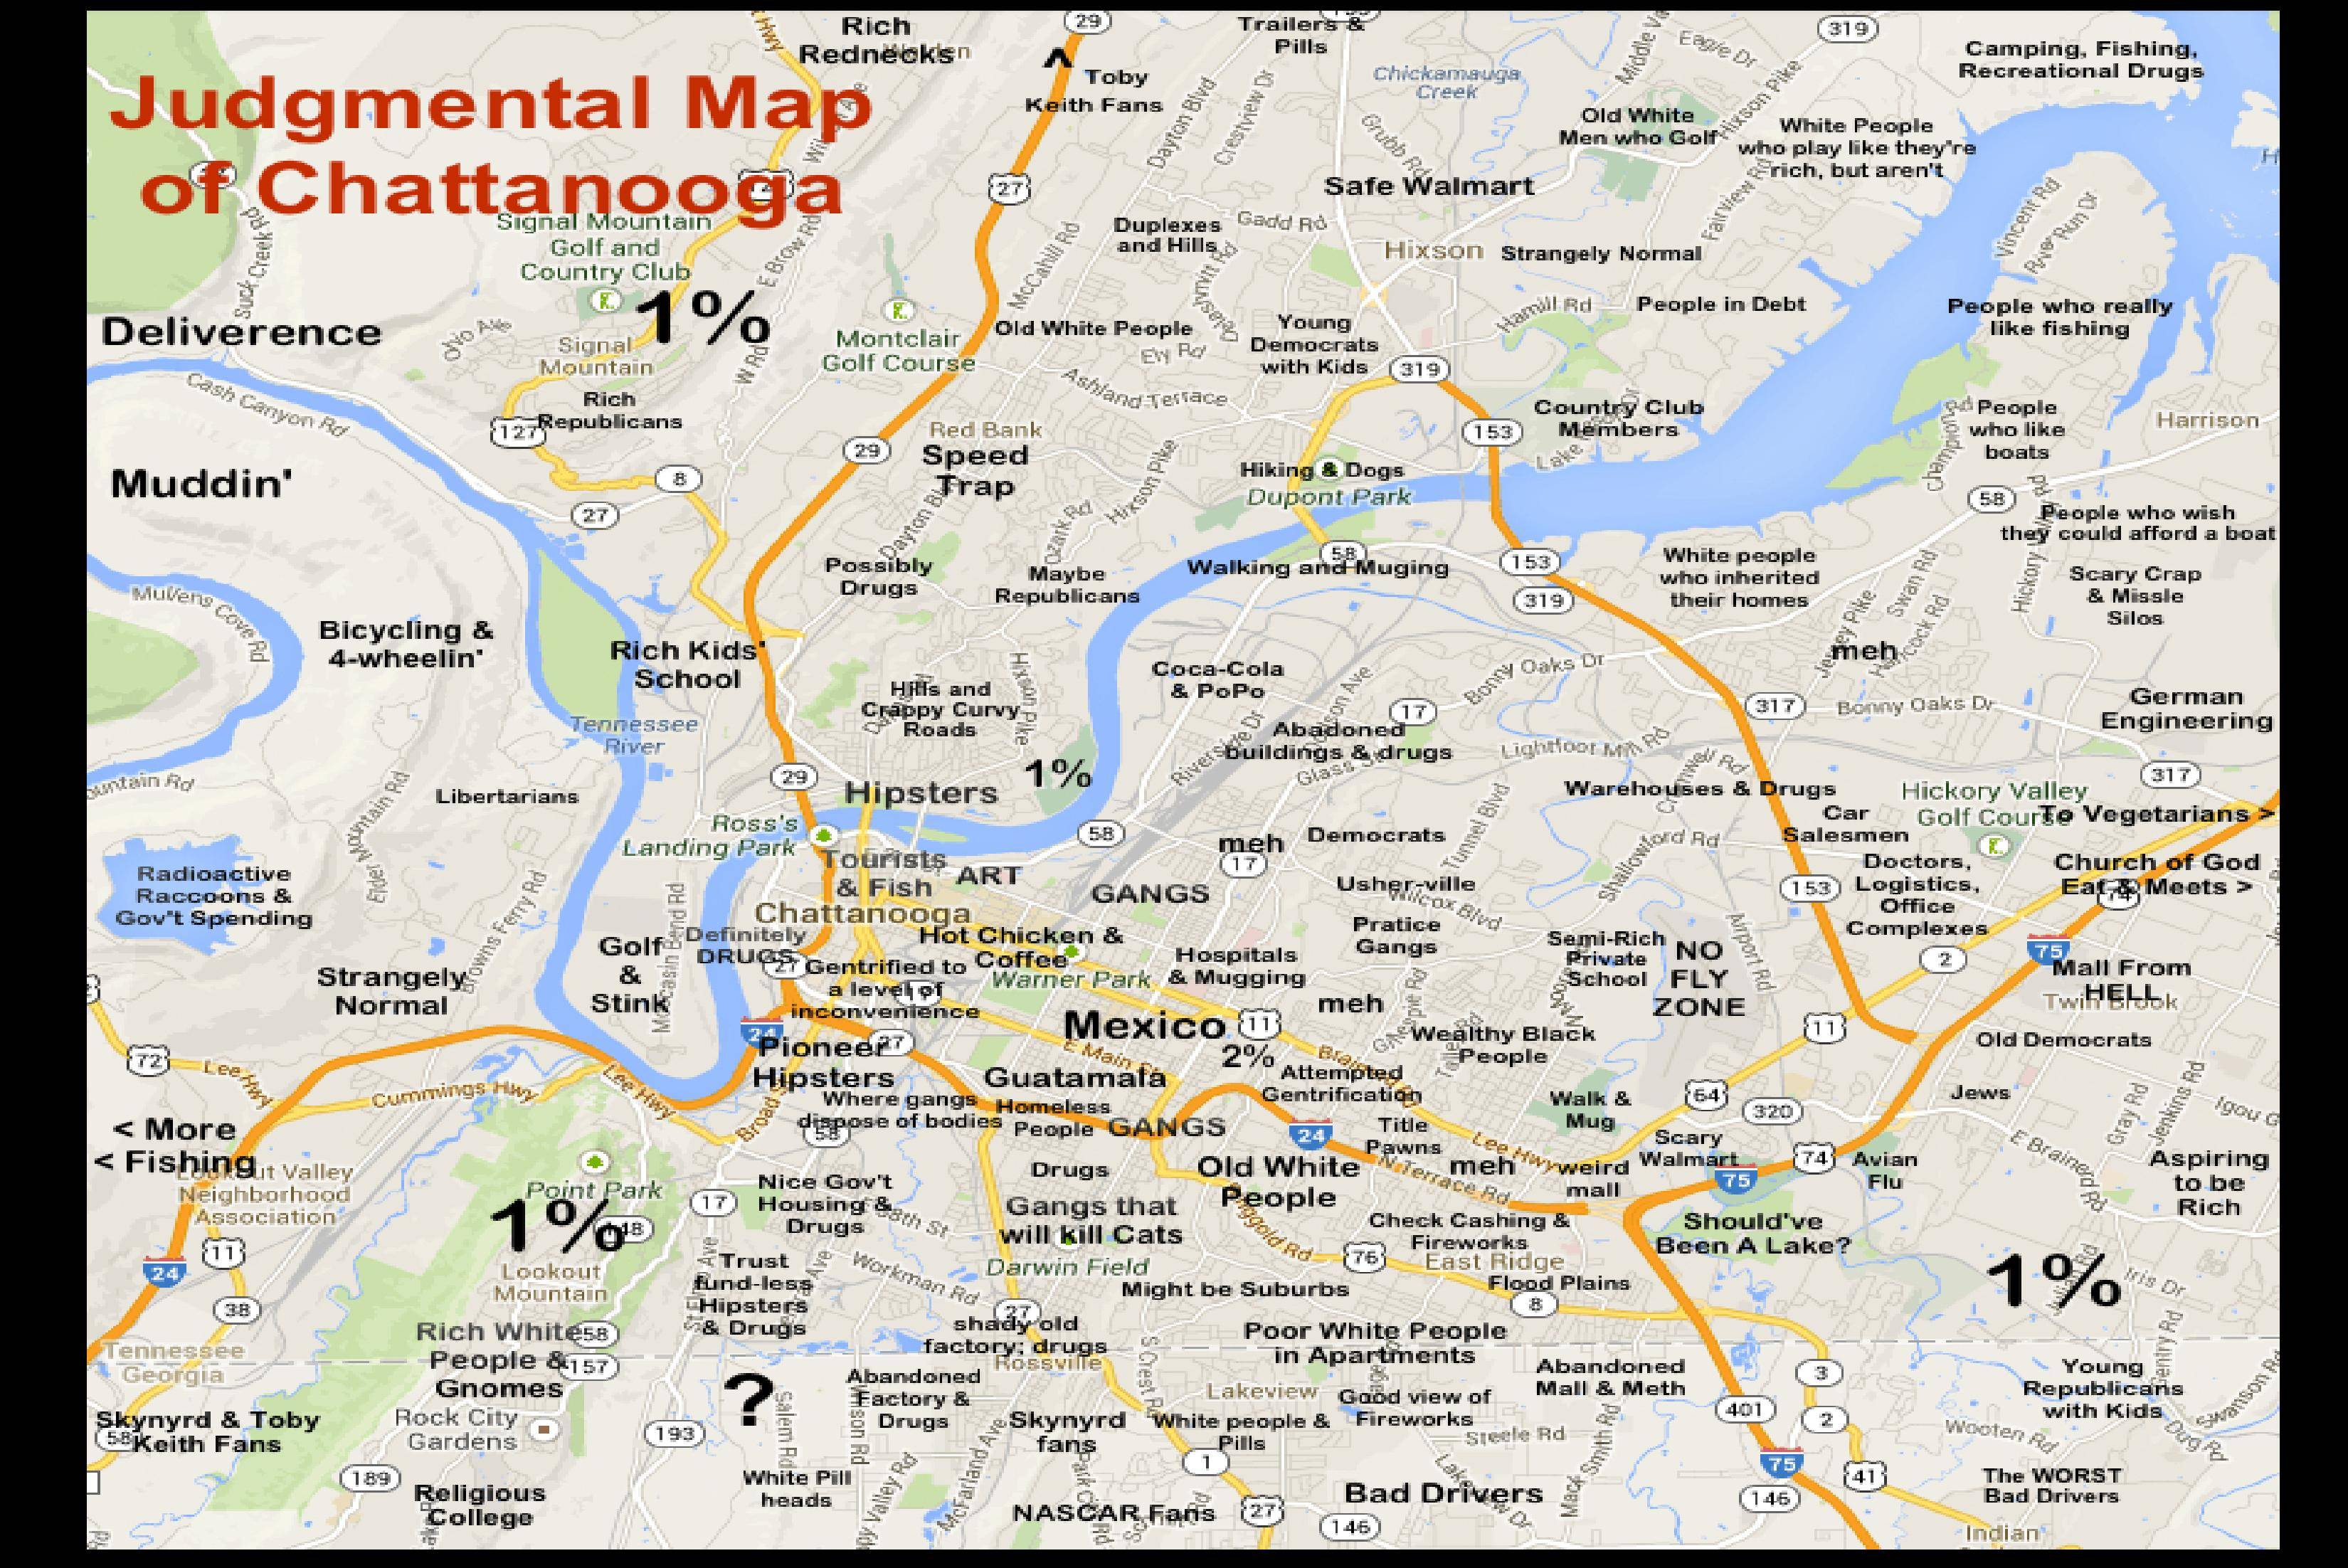 Remember the judgmental map of Chattanooga? Now there are plans for ...